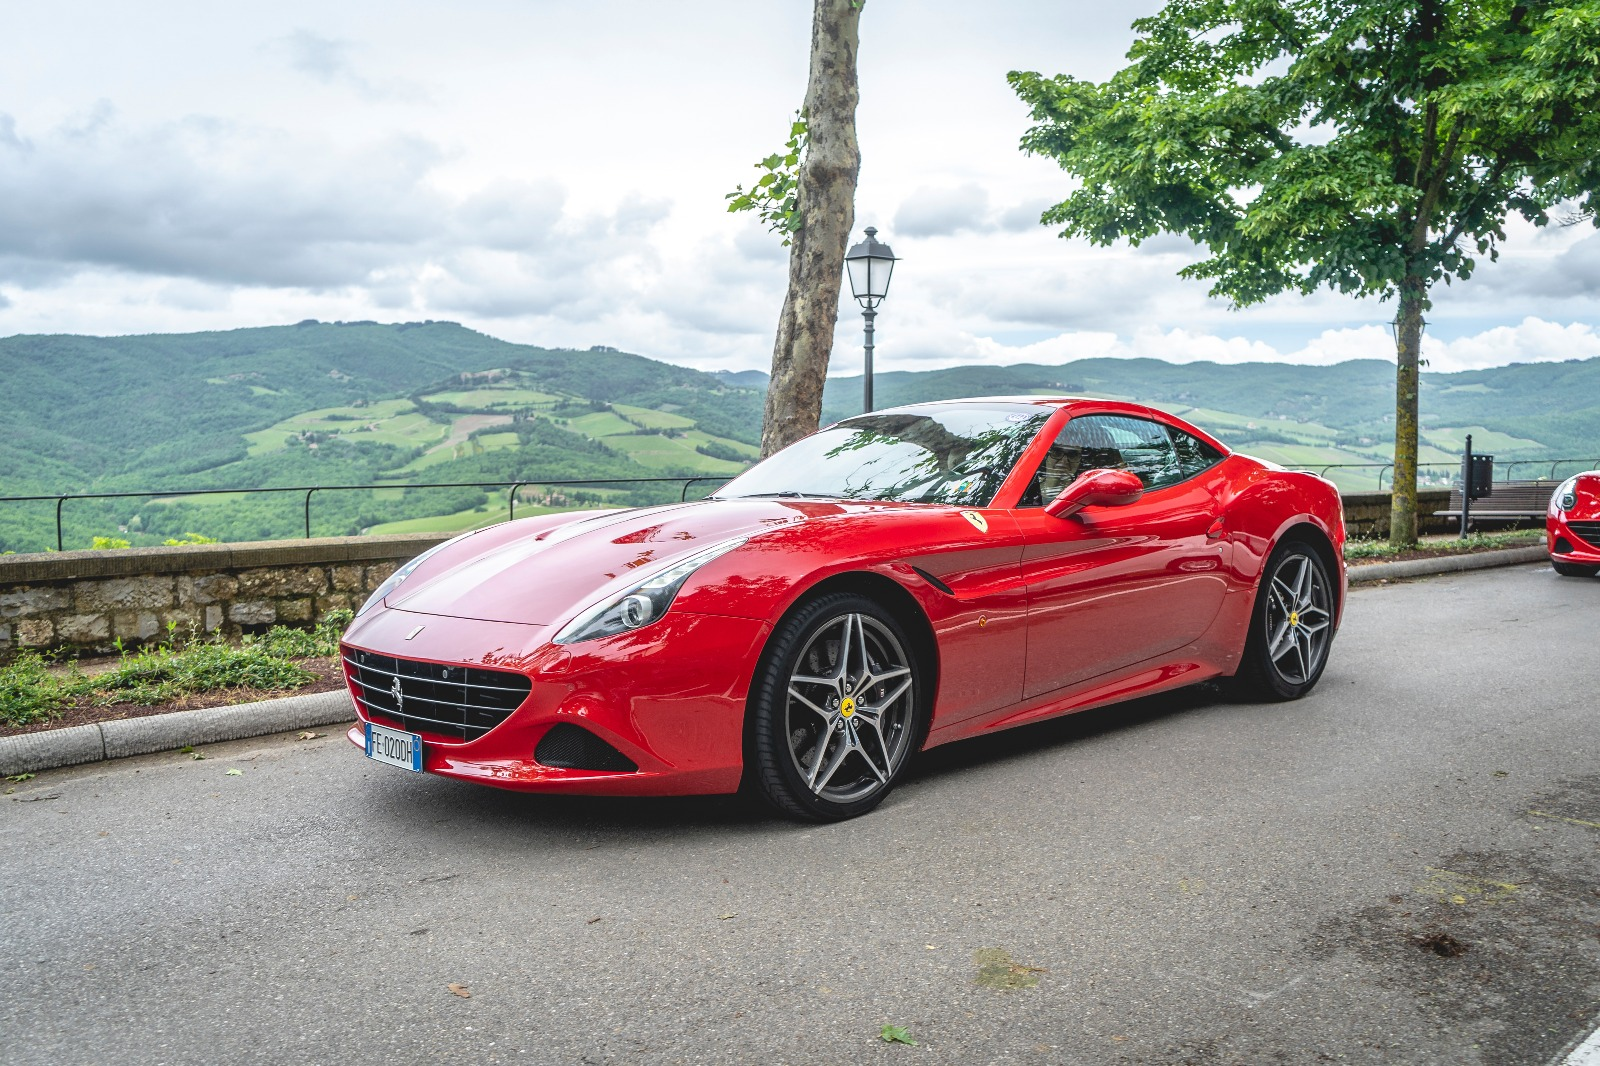 Rent a Ferrari California Turbo to explore Chianti hills -